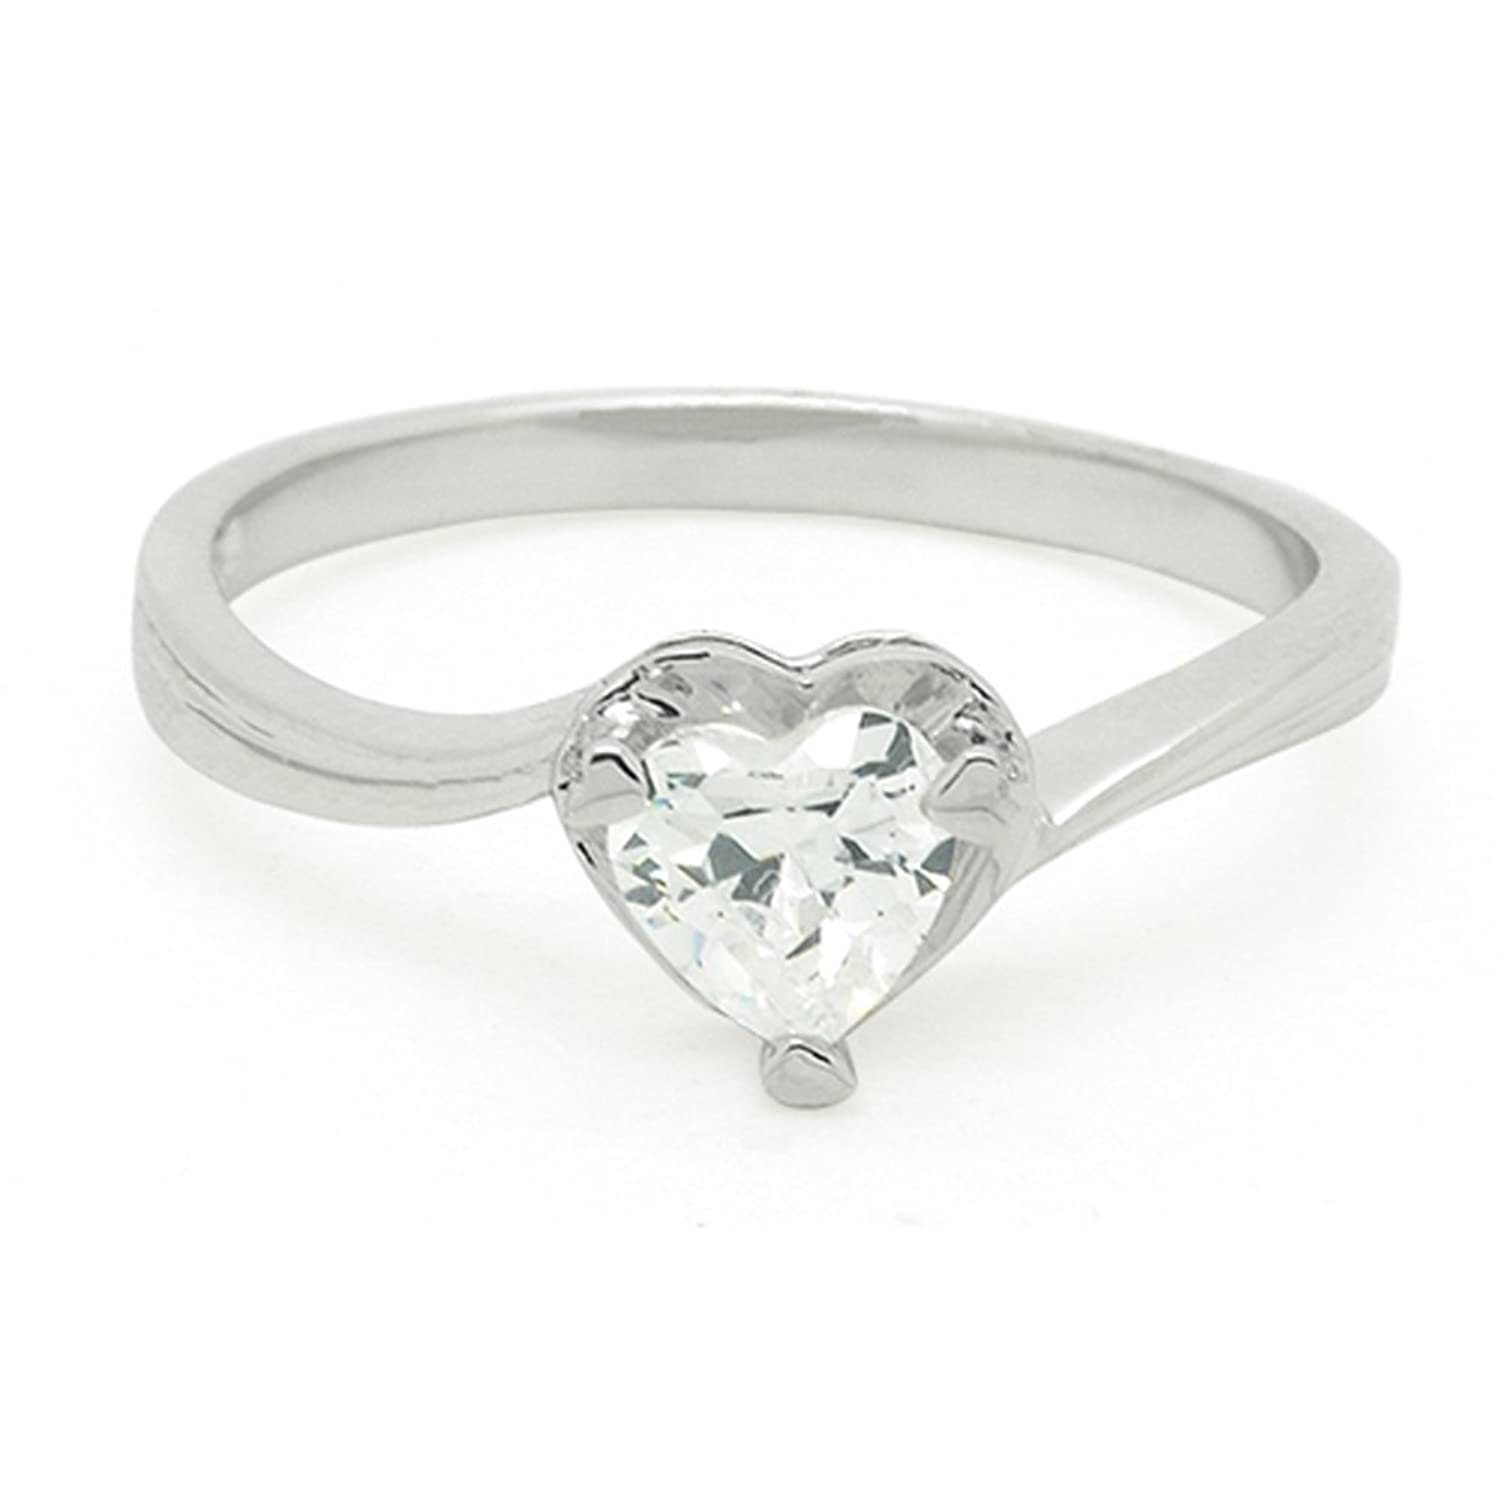 Ring Stainless Round Cut CZ Bold High Polish Womens Size 5-10